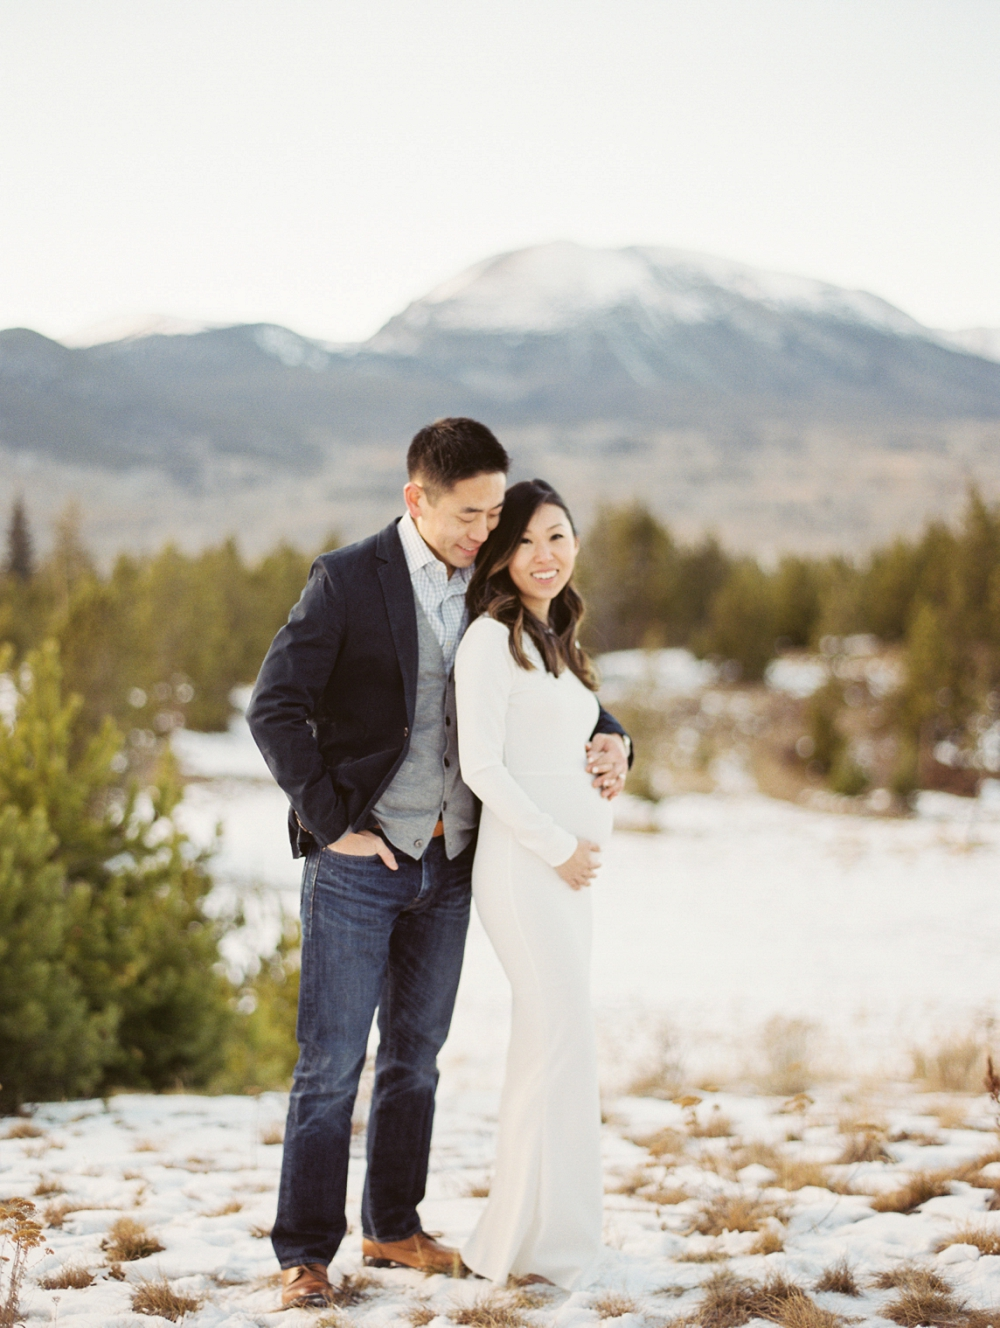 Dani-Cowan-Photography-Snowy-Colorado-Mountain-Maternity-Photoshoot55_WEB